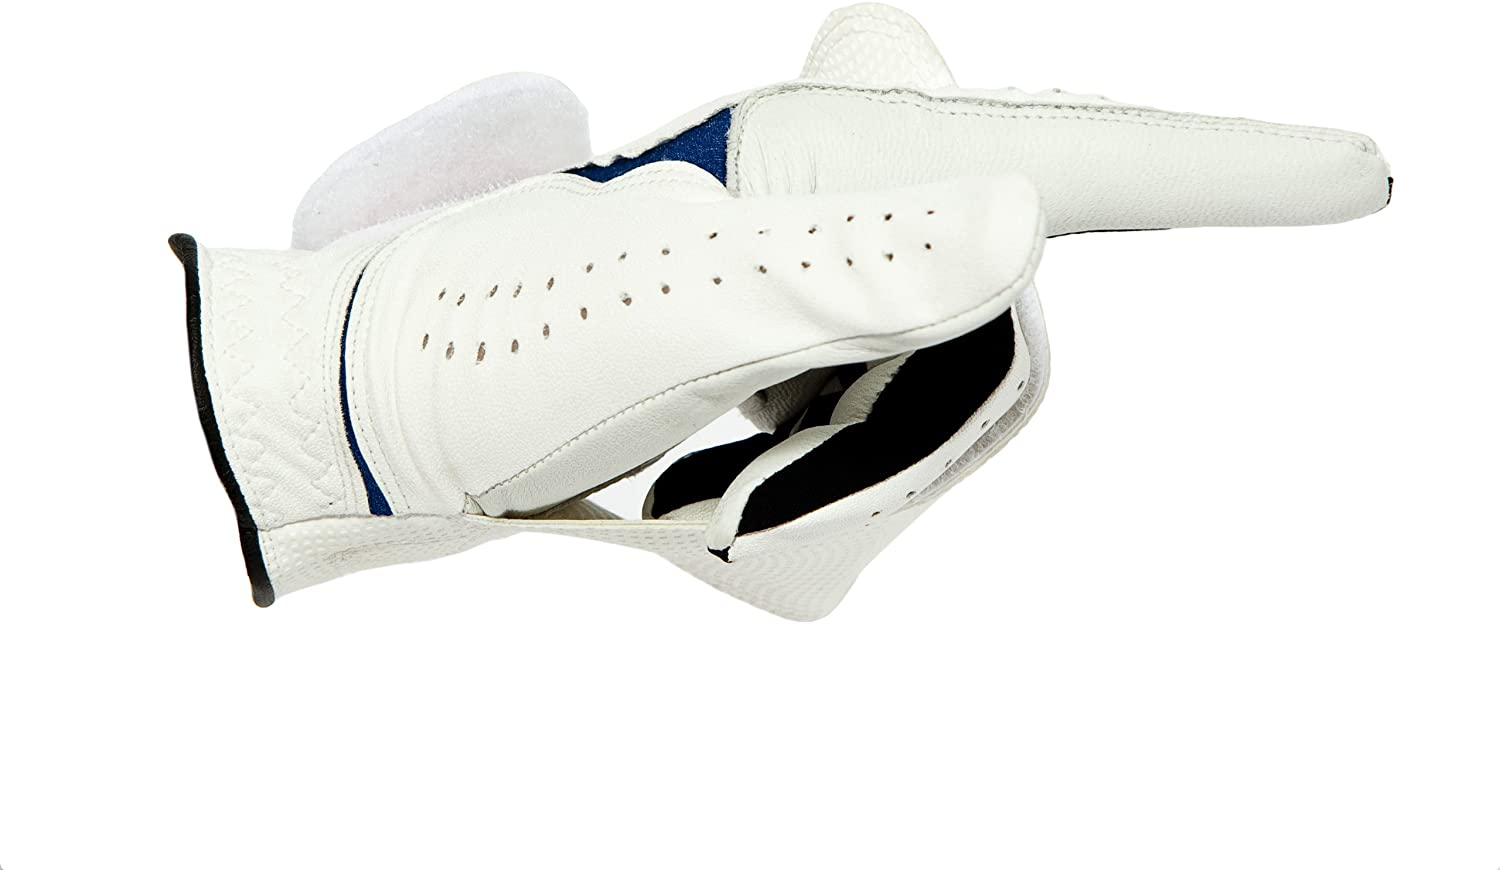 NEW! Awesome Innovative Golf Glove for Adults - Cabretta Leather - X-Large - White - Right - Mens